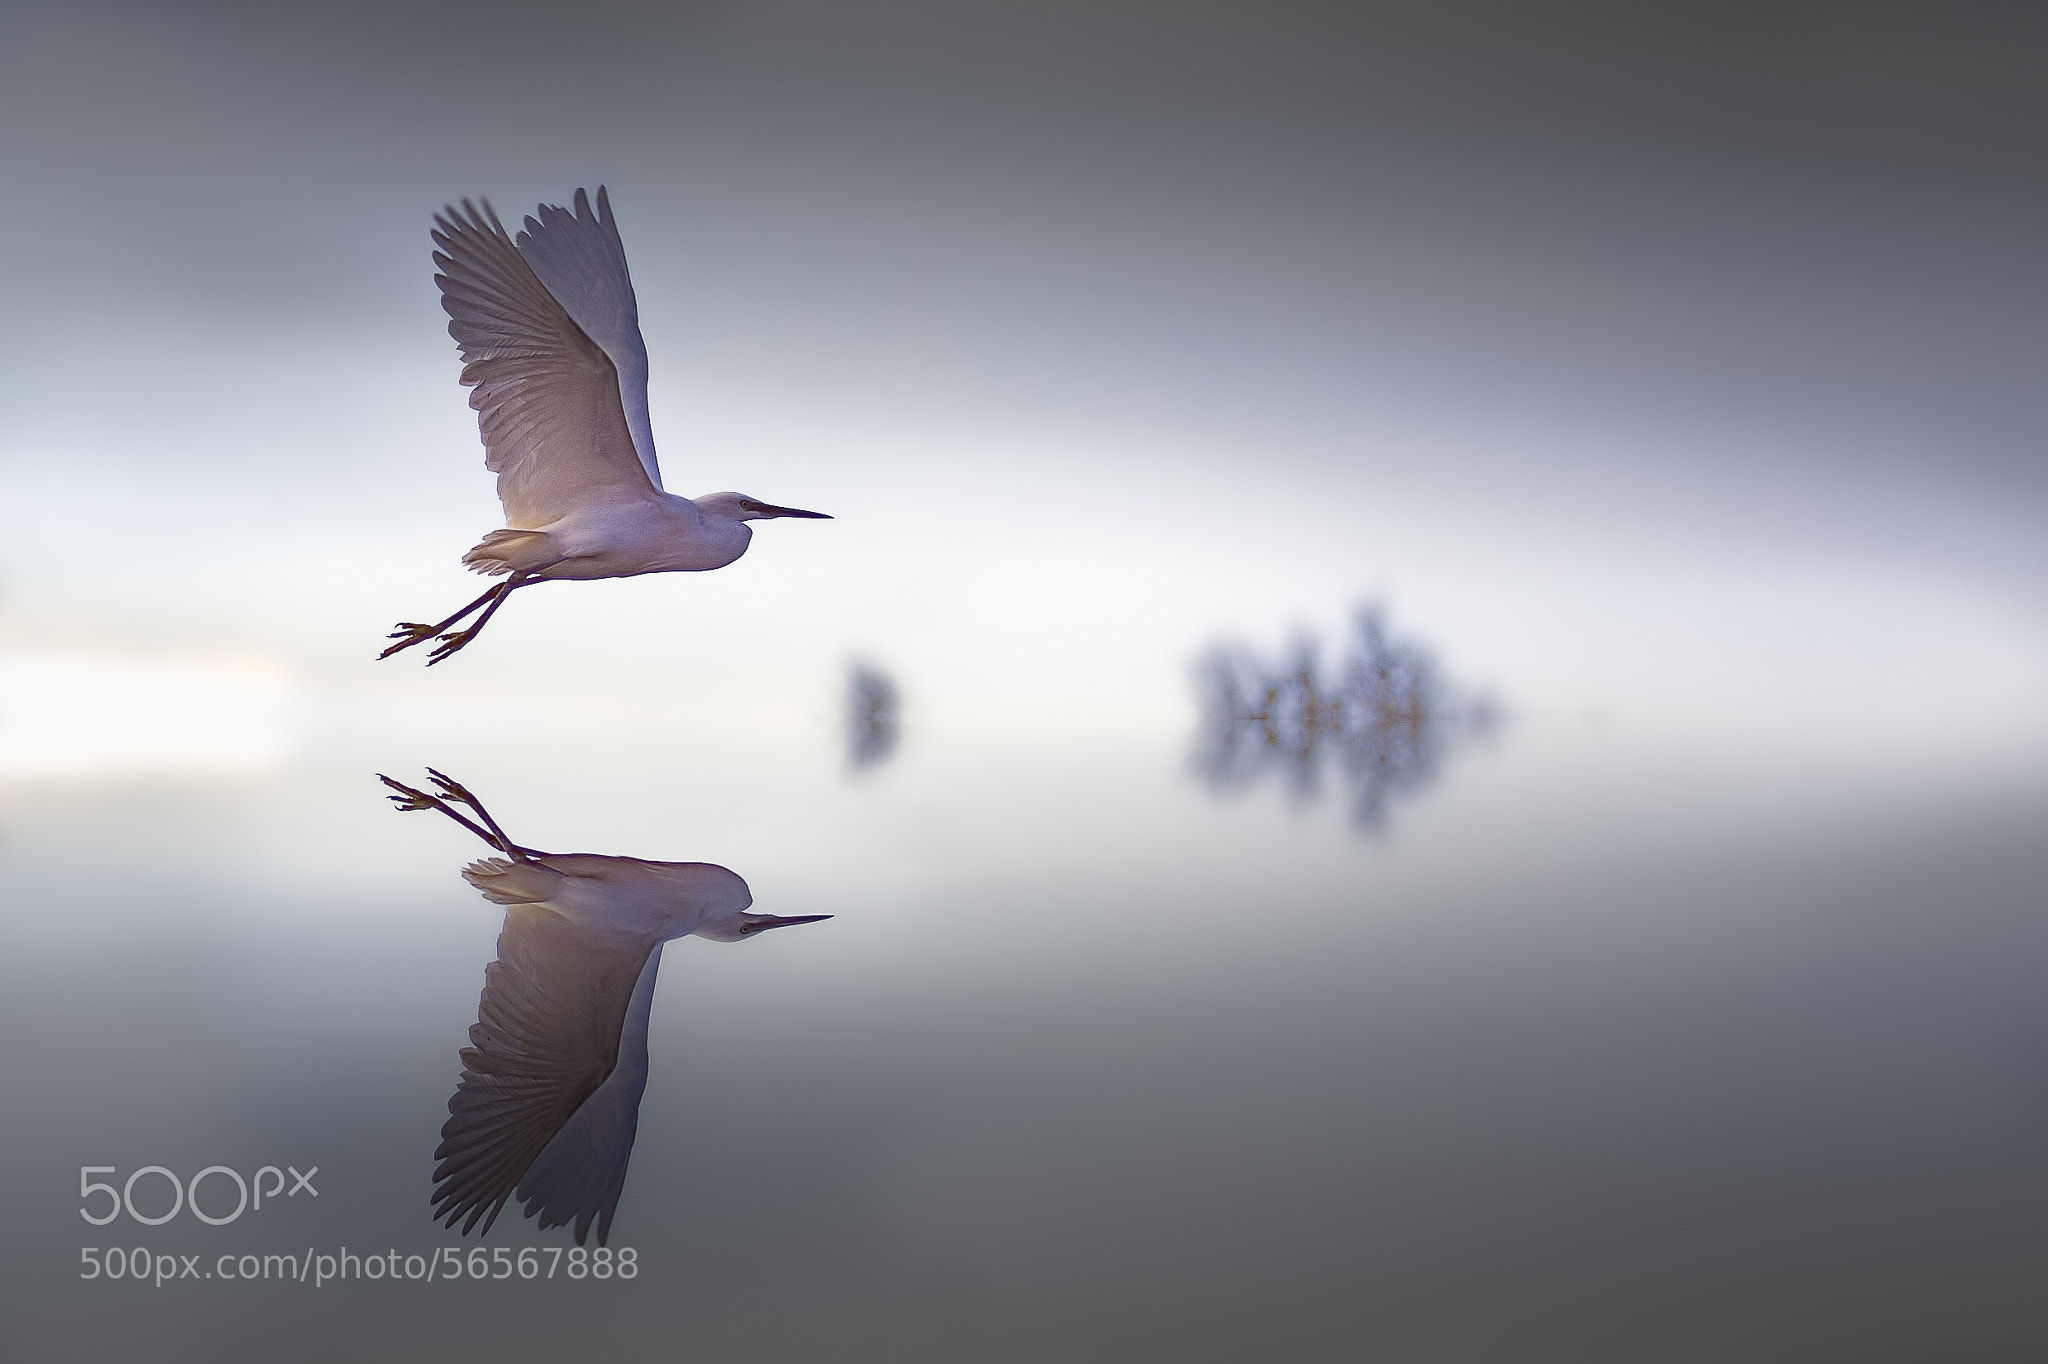 Photograph To fly through the window by Martine Benezech on 500px